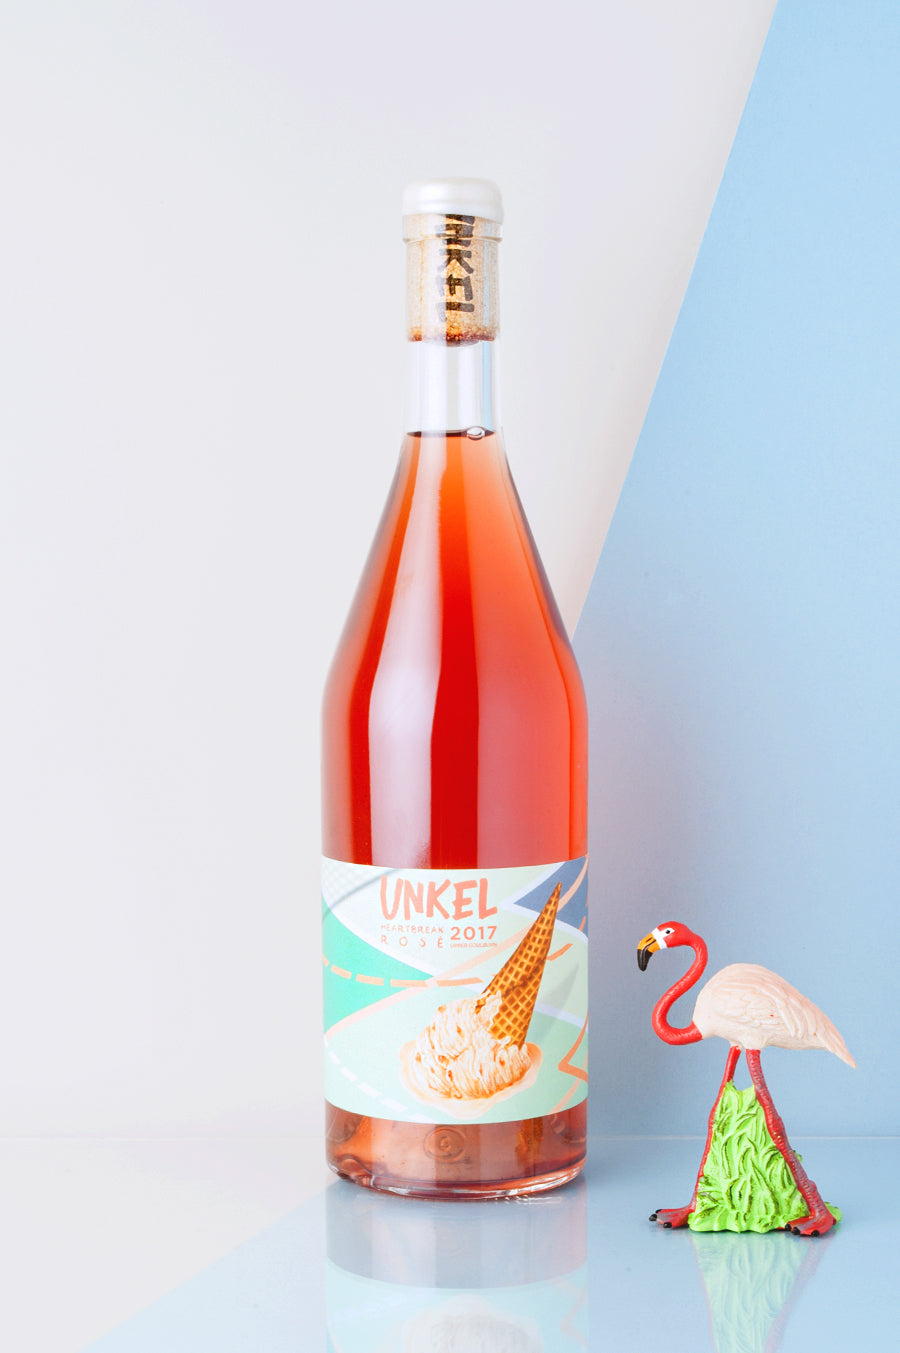 Unkel Heartbreak Rosé